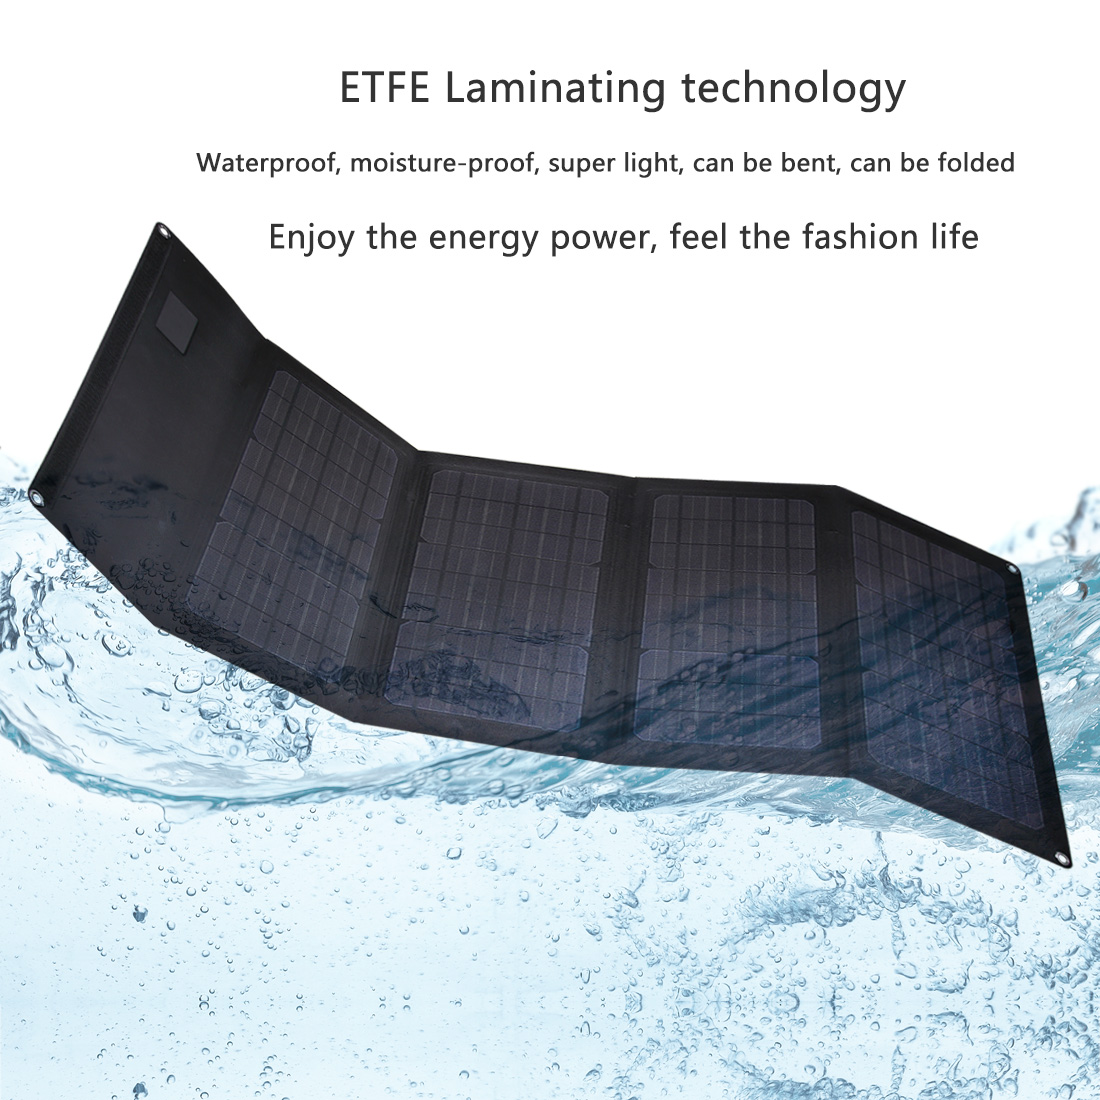 New Design Of Etfe Coating Technology For 36w Folding